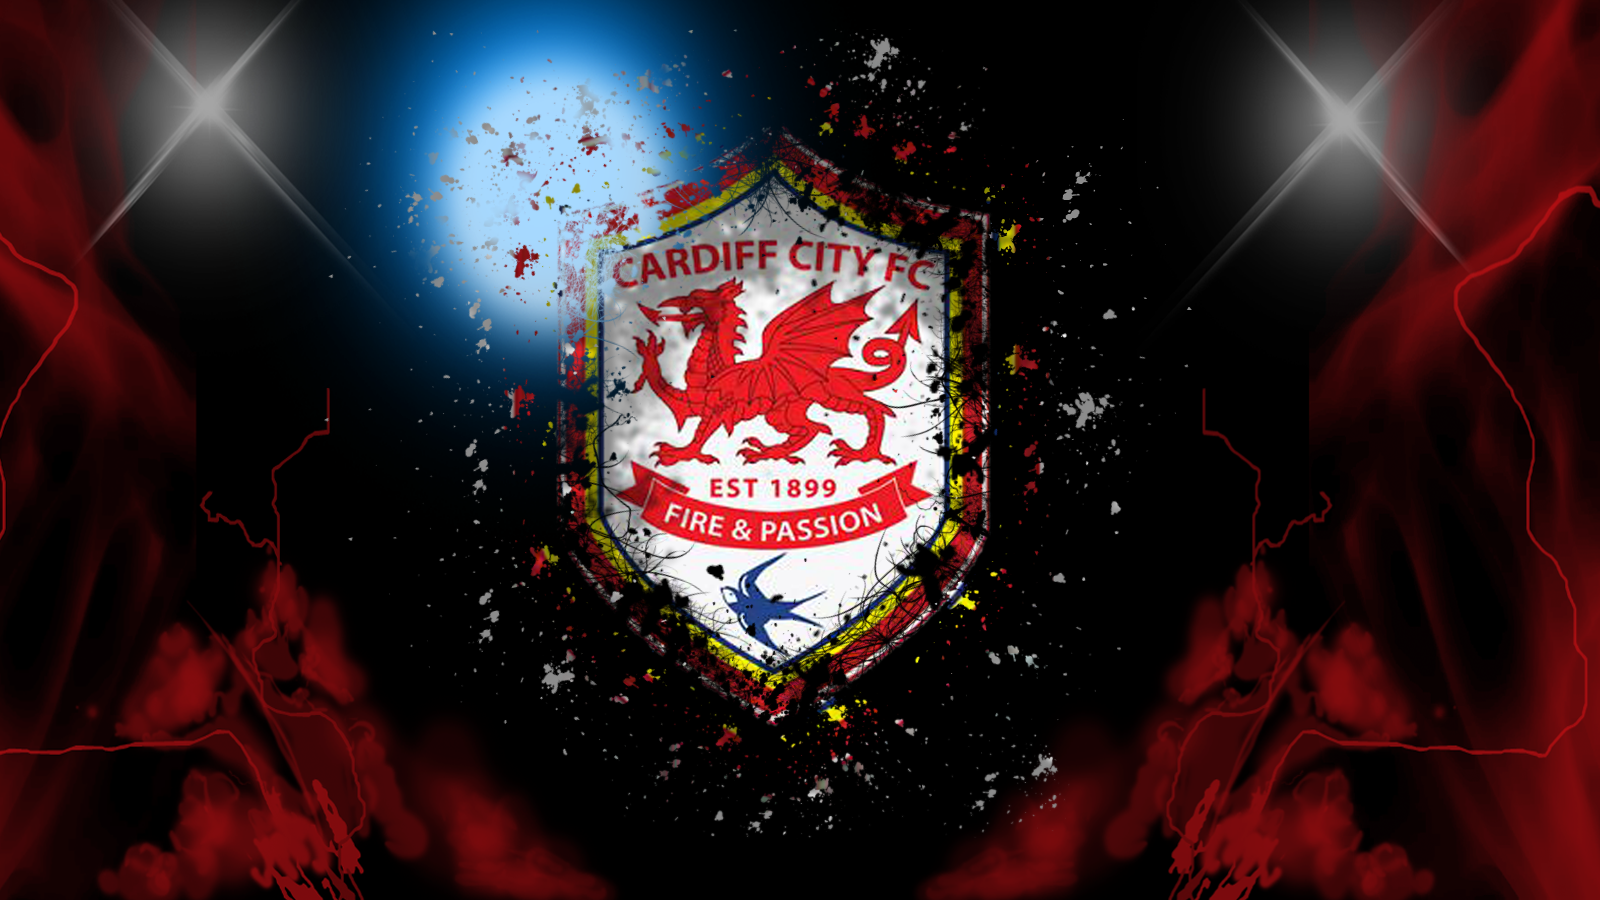 Cardiff City  Wallpaper